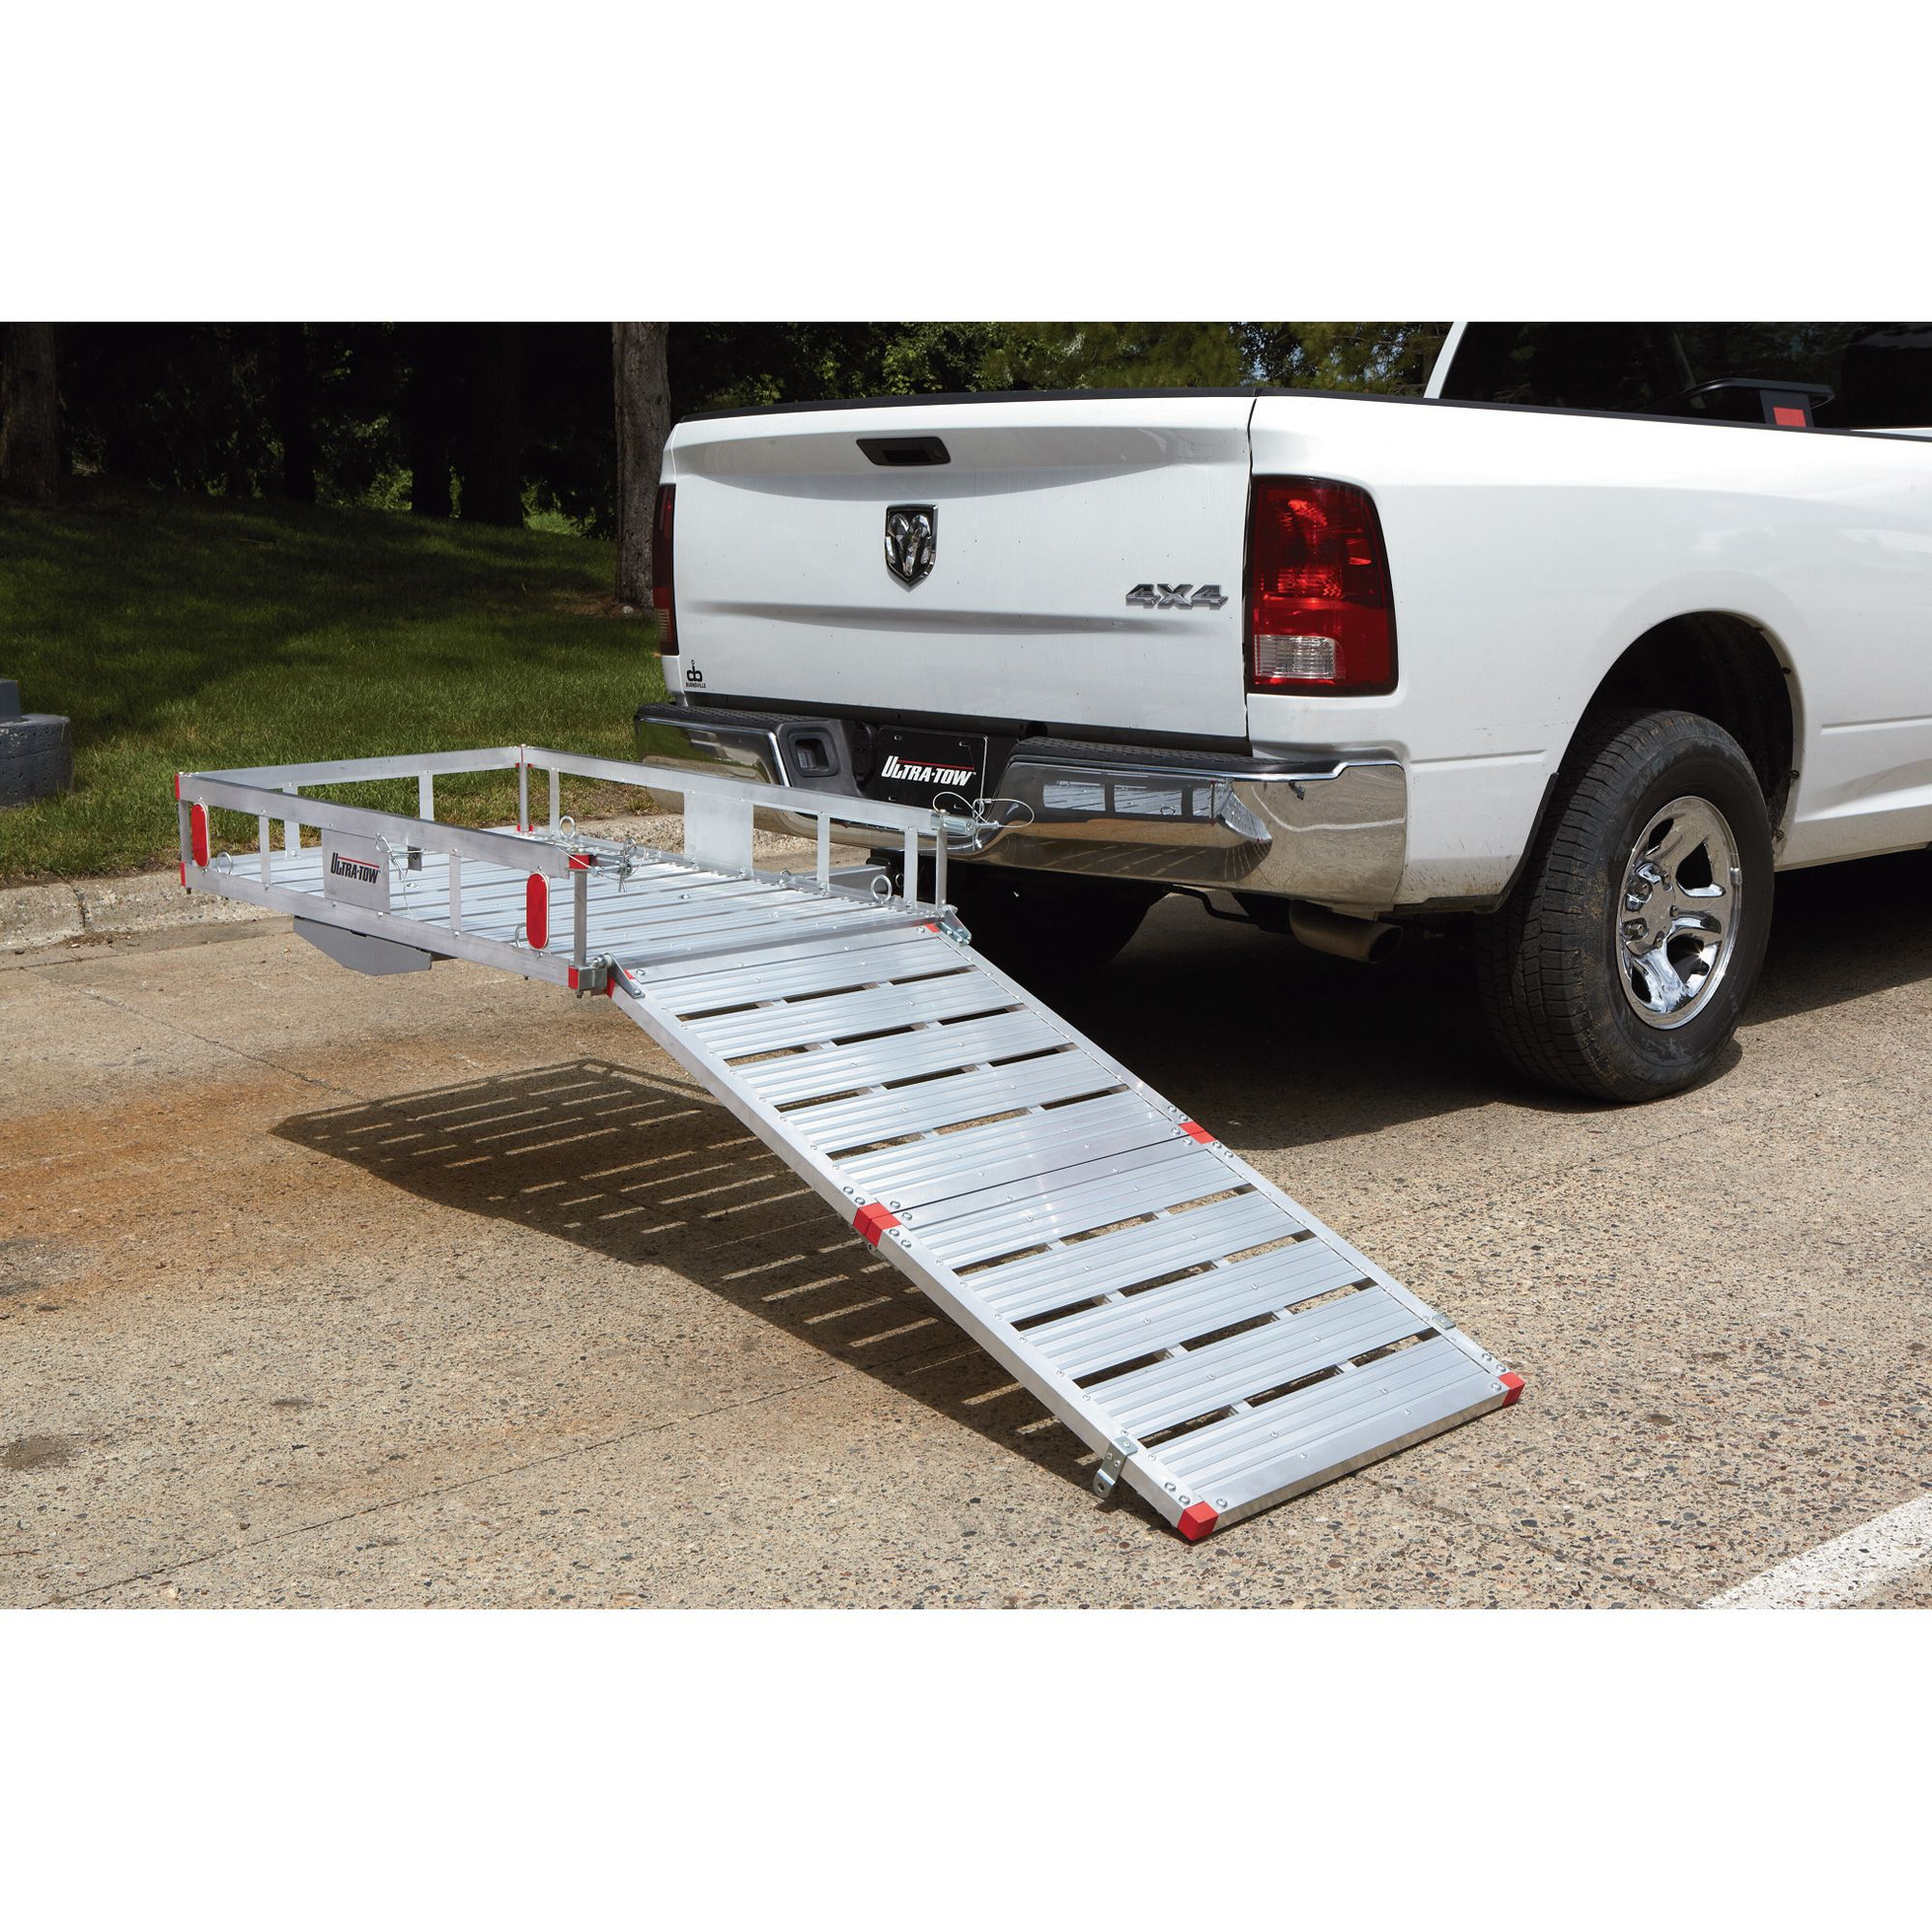 575d9307ae Ultra-Tow aluminum cargo carrier platform provides extra cargo space on the  exterior of your vehicle with a 49in.L x 26in.W drop-down ramp that makes  it ...